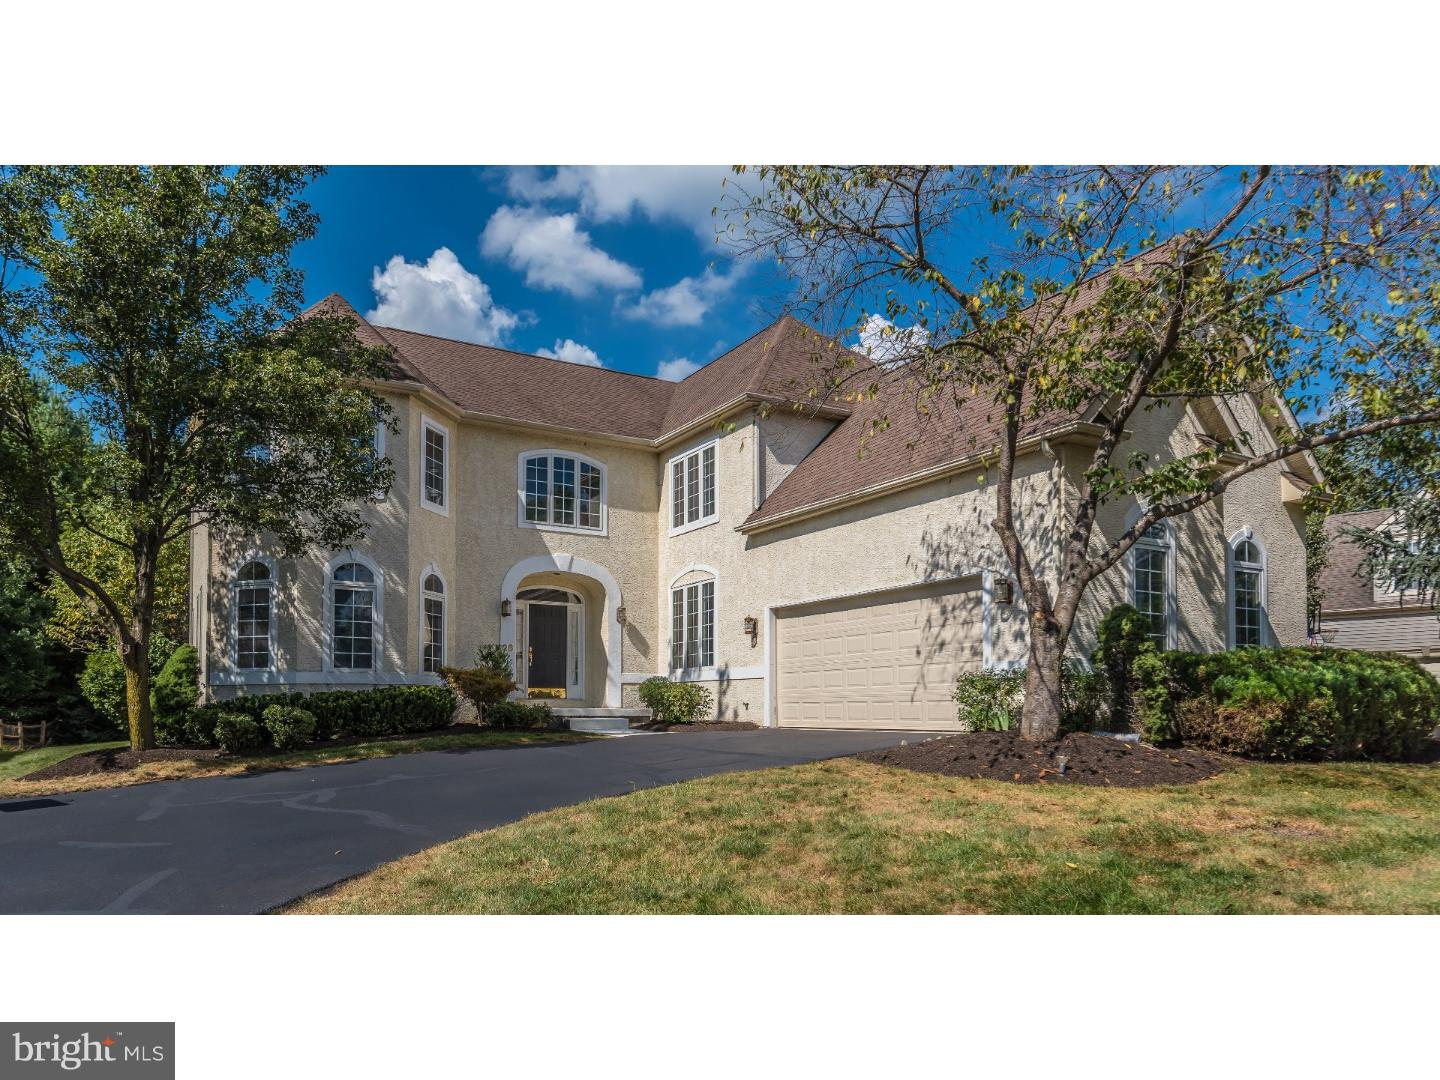 Property for Sale at 28 LENAPE Drive New Hope, Pennsylvania 18938 United States